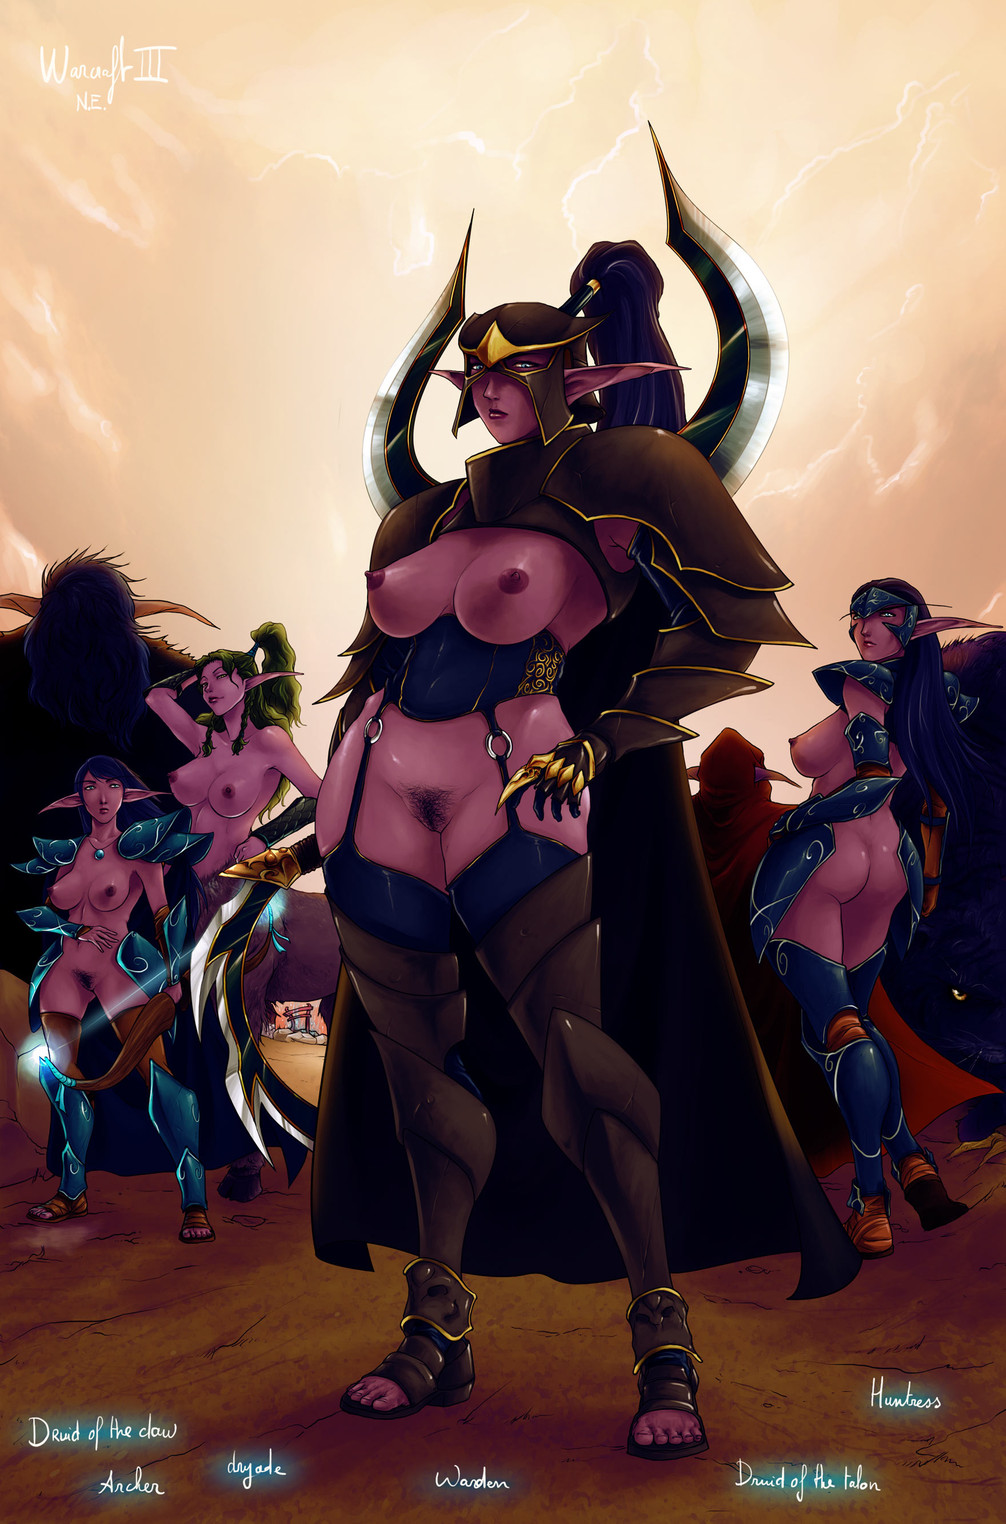 succubus of warcraft hentai world Pictures of toothless from how to train your dragon